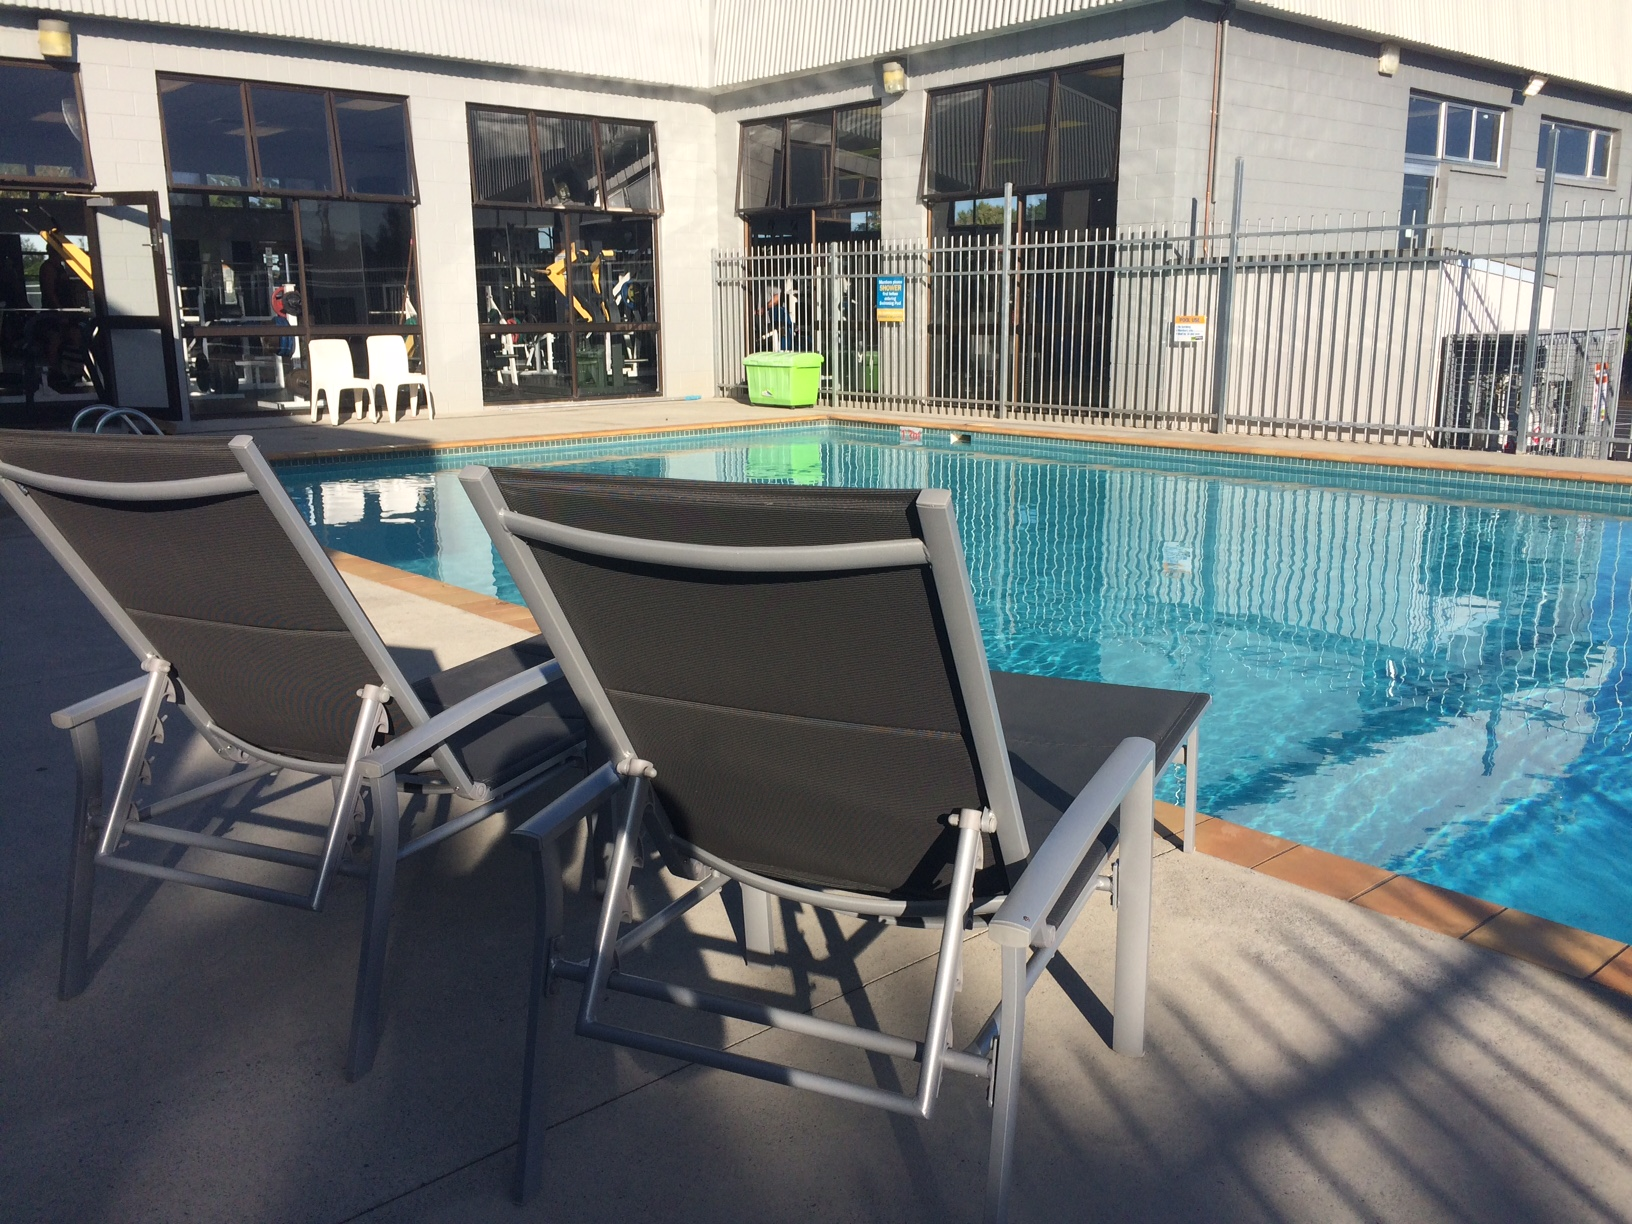 Club Physical outdoor pool Te Atatu location